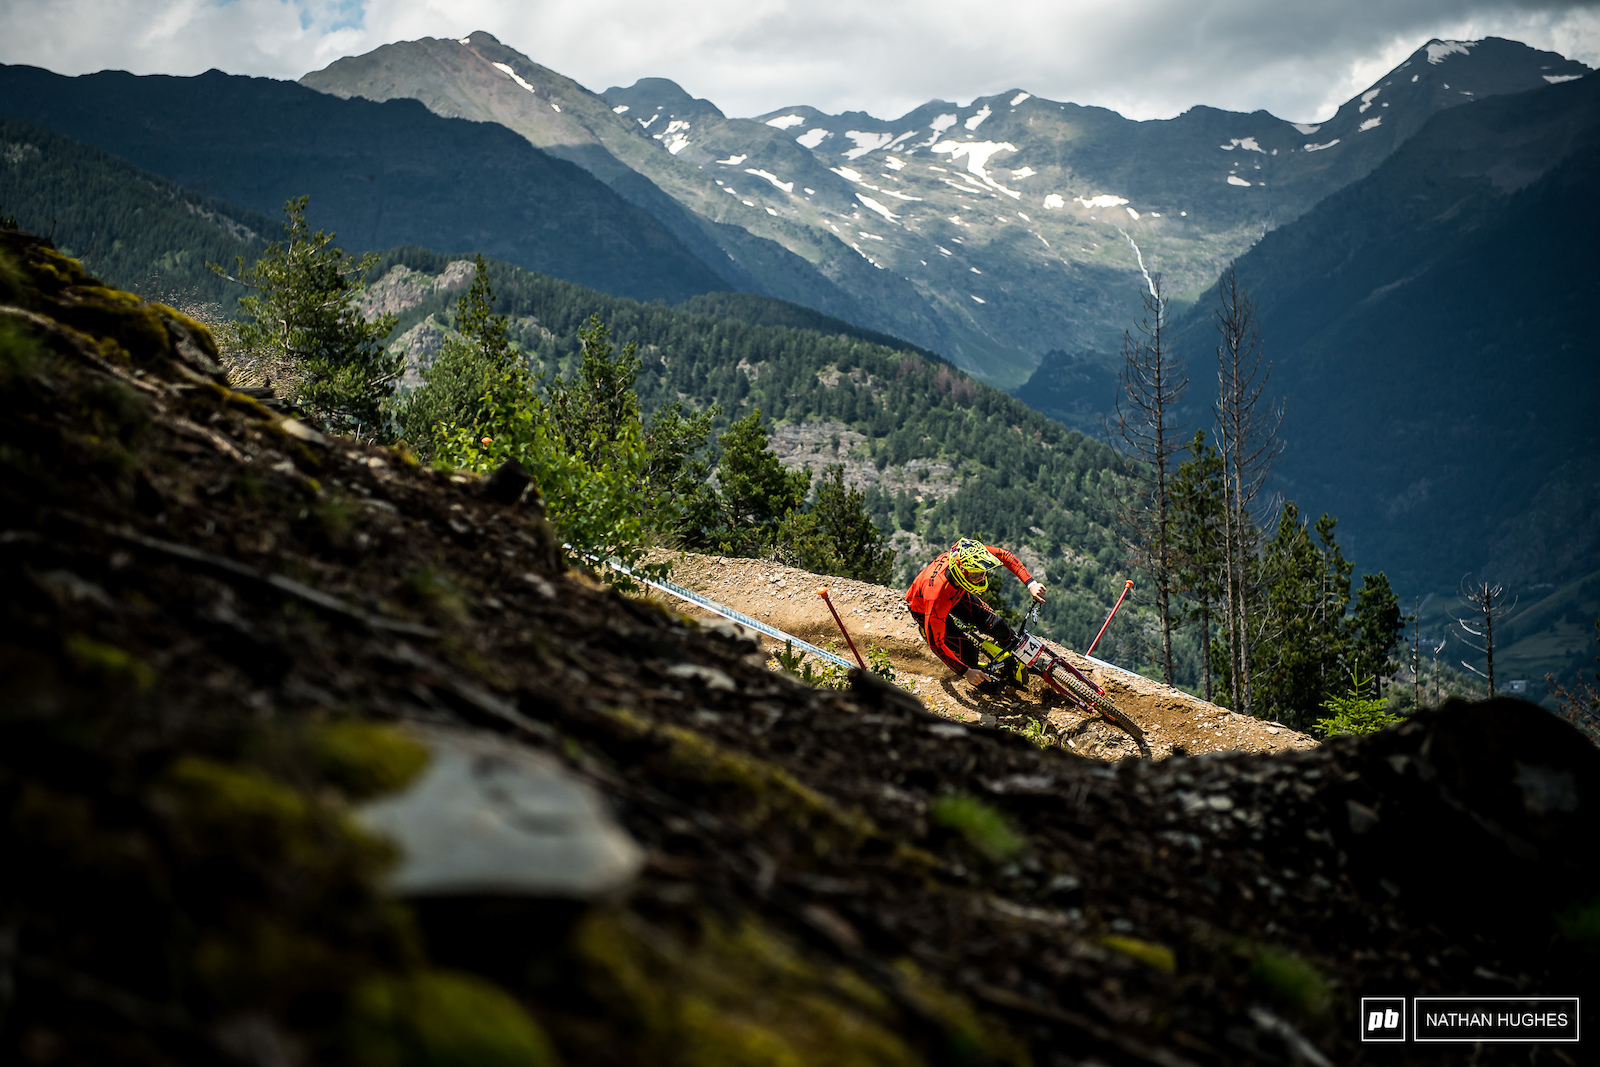 Dean Lucas digging in to the Vallnord shale and looking to get that plate into single digits heading to MSA.